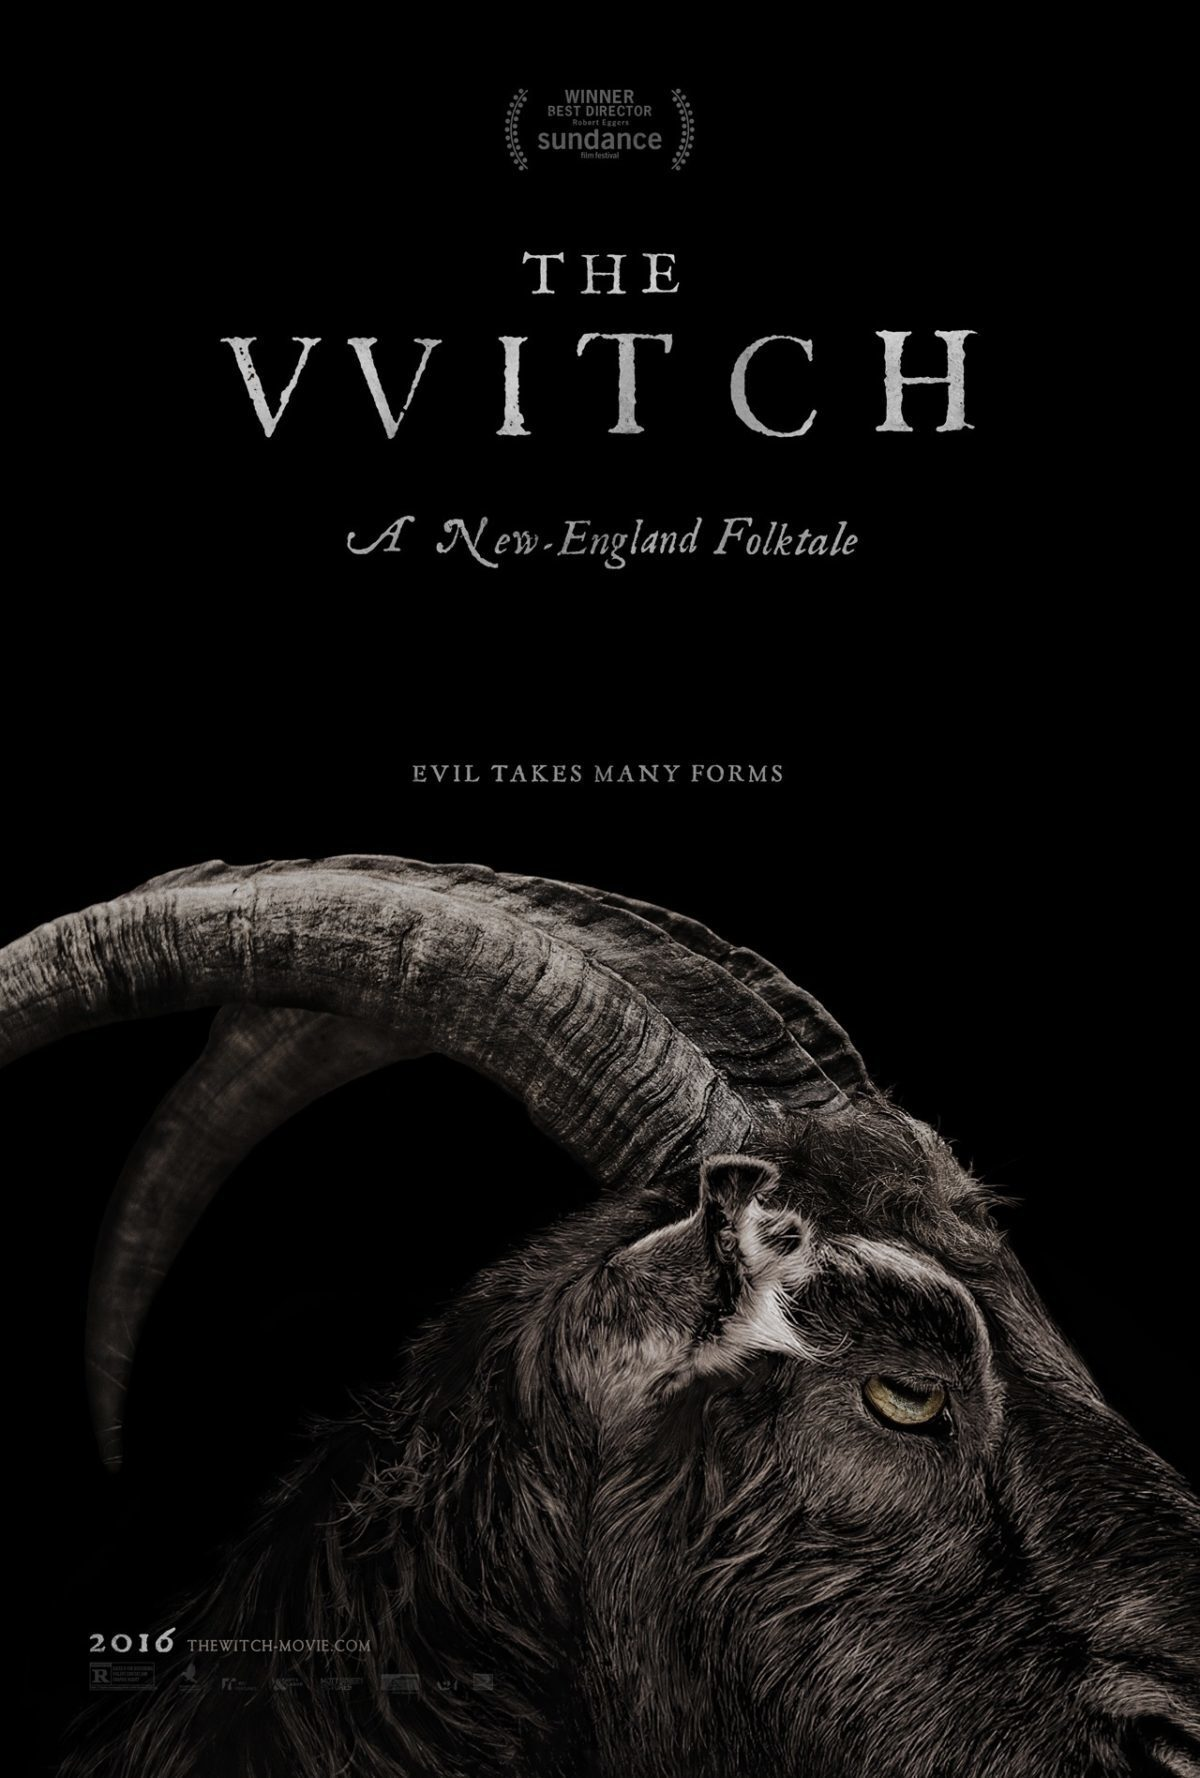 The Witch 2 170823 173720